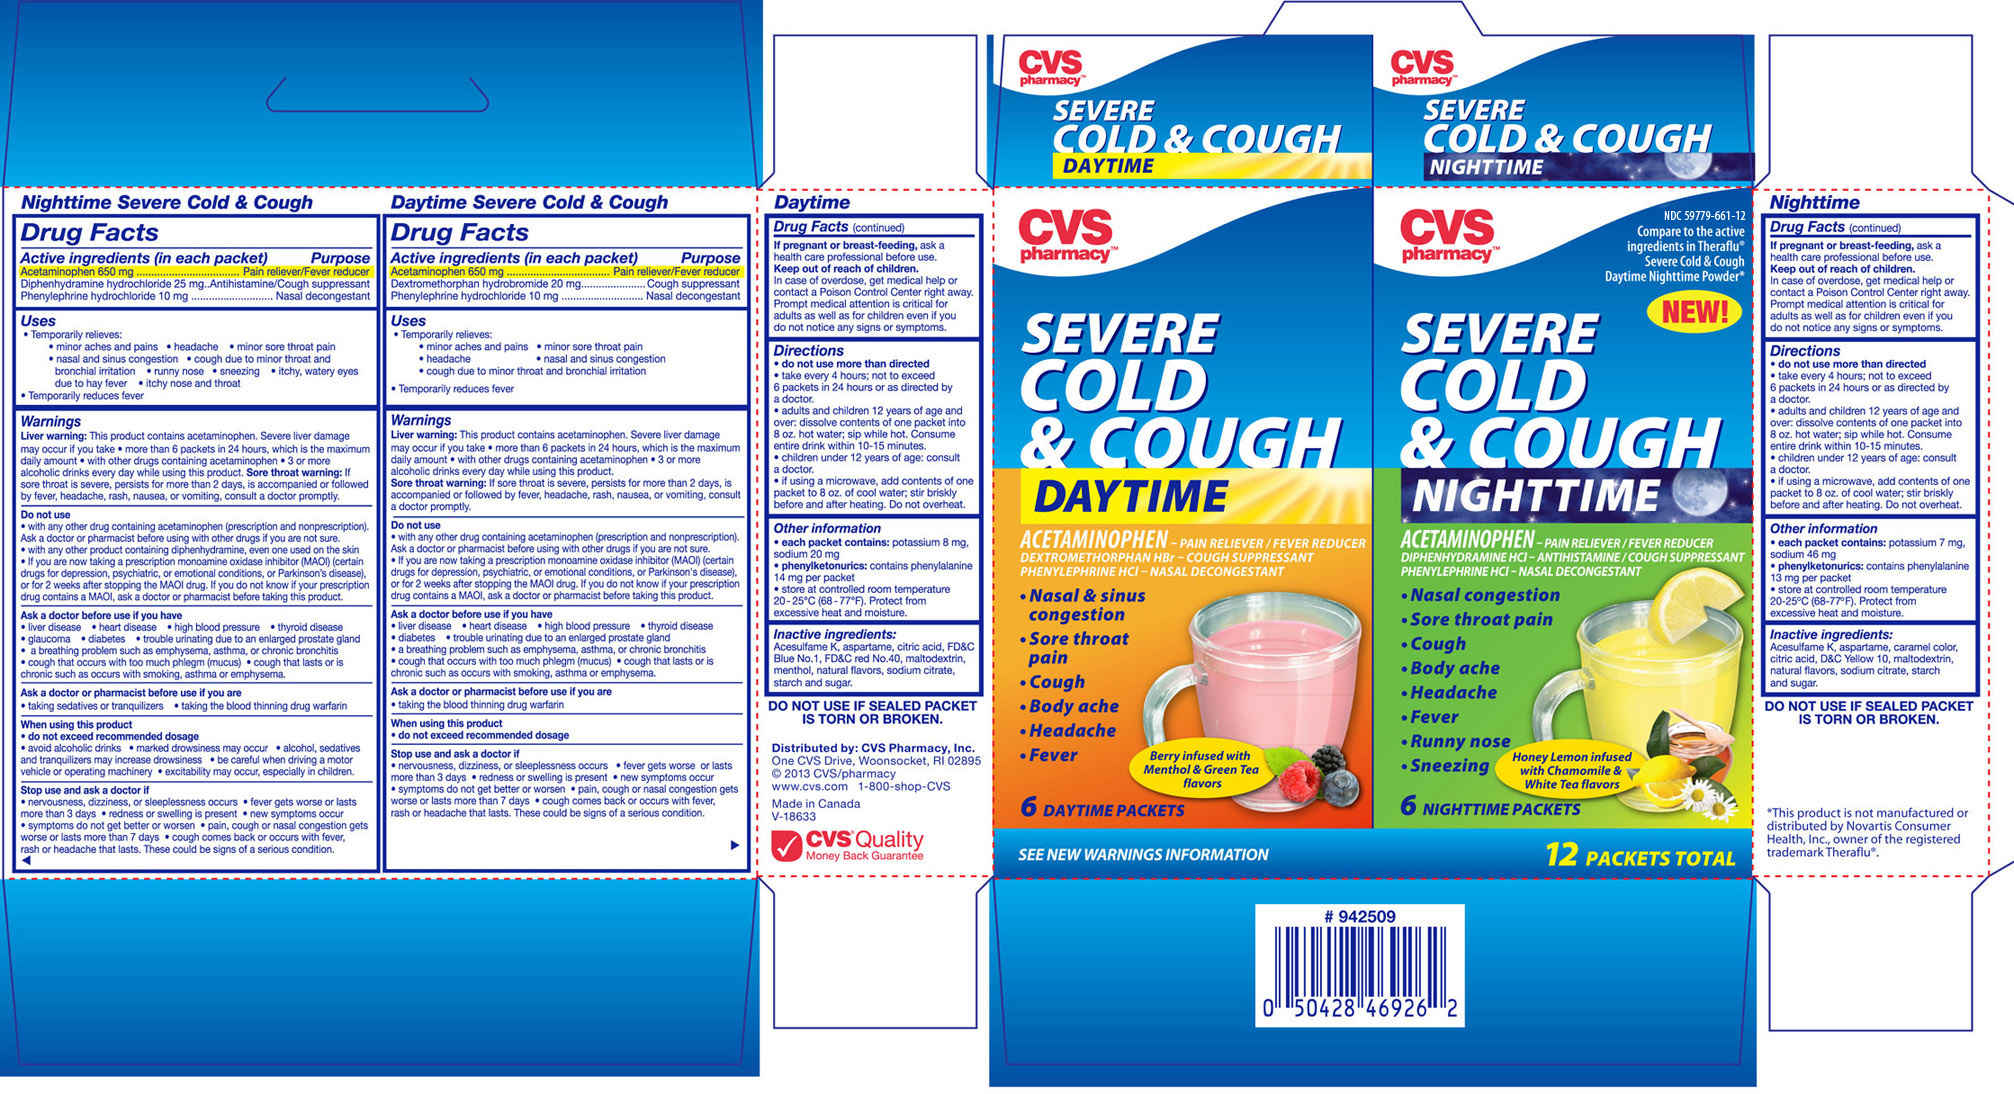 Cvs Pharmacy Daytime Nighttime Severe Cold And Cough Kit (Acetaminophen, Diphenhydramine Hcl, Phenylephrine Hcl And Dextromethorphan Hbr) Kit [Cvs Pharmacy]